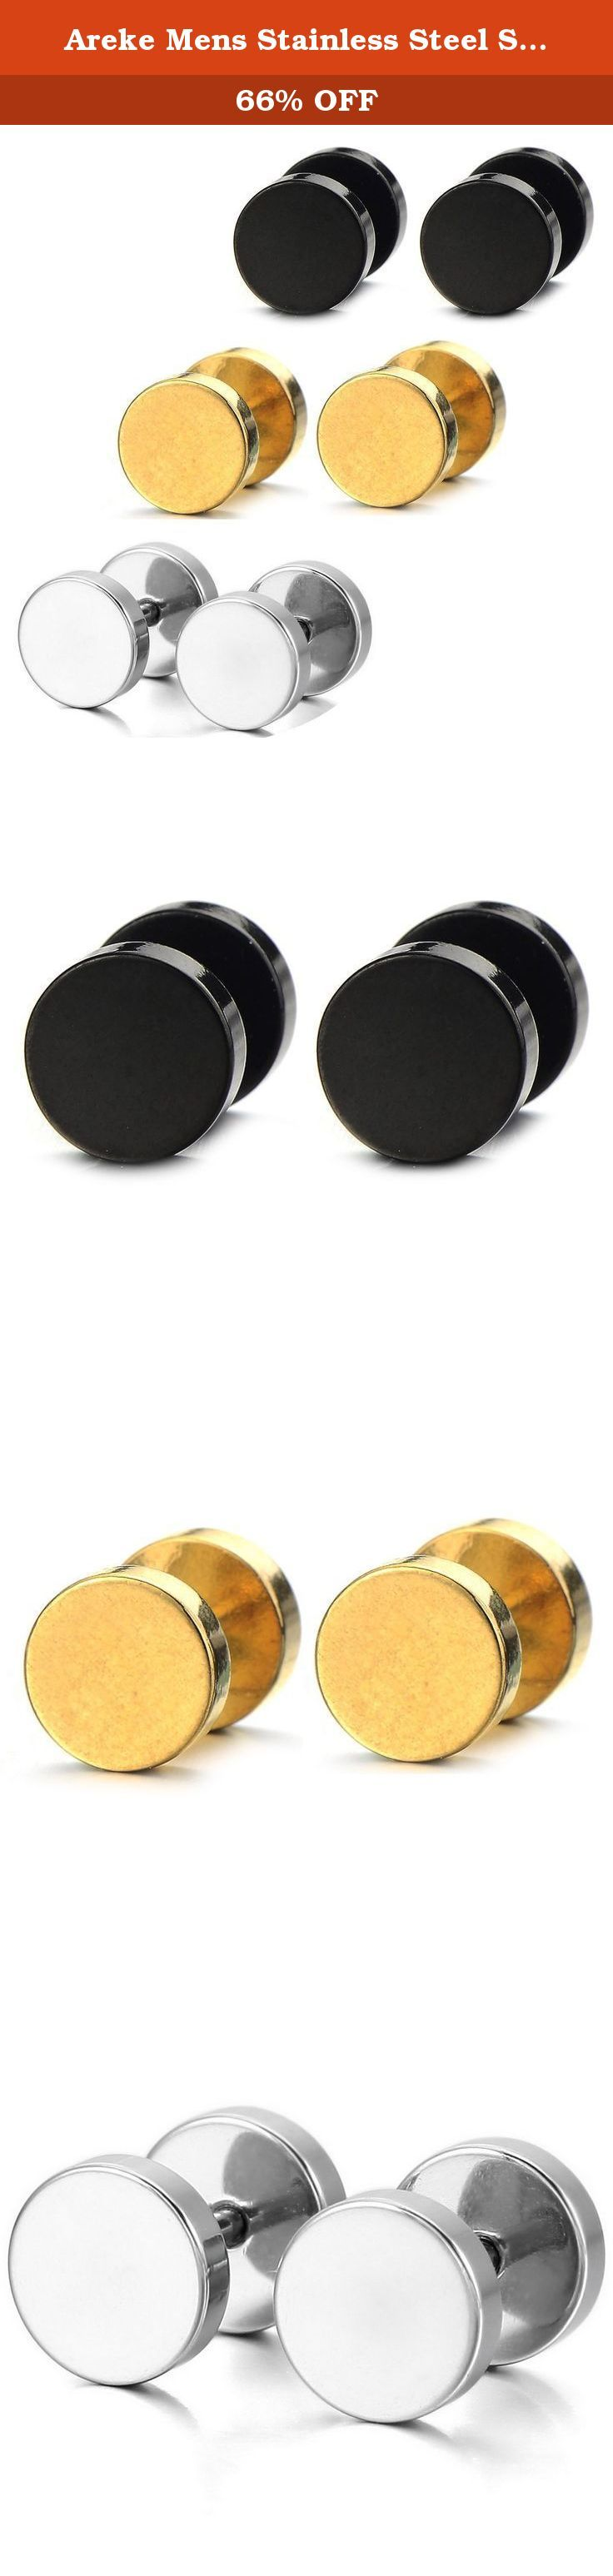 Areke Mens Stainless Steel Screw Stud Earrings Unisex Womens Ear Plugs Tunnel Jewelry 3 Pairs Color Black Gold Silver. Areke Mens Stainless Steel Screw Stud Earrings Unisex Womens Ear Plugs Tunnel Jewelry 3 Pairs 3 pairs a set,silver tone gold tone and black,you could have a different color each day. Why choose stainless steel for jewelry High quality stainless steel is highly resisted to rust, corrosion and tarnishing. Stainless steel is a perfect choice for those who are allergic to…